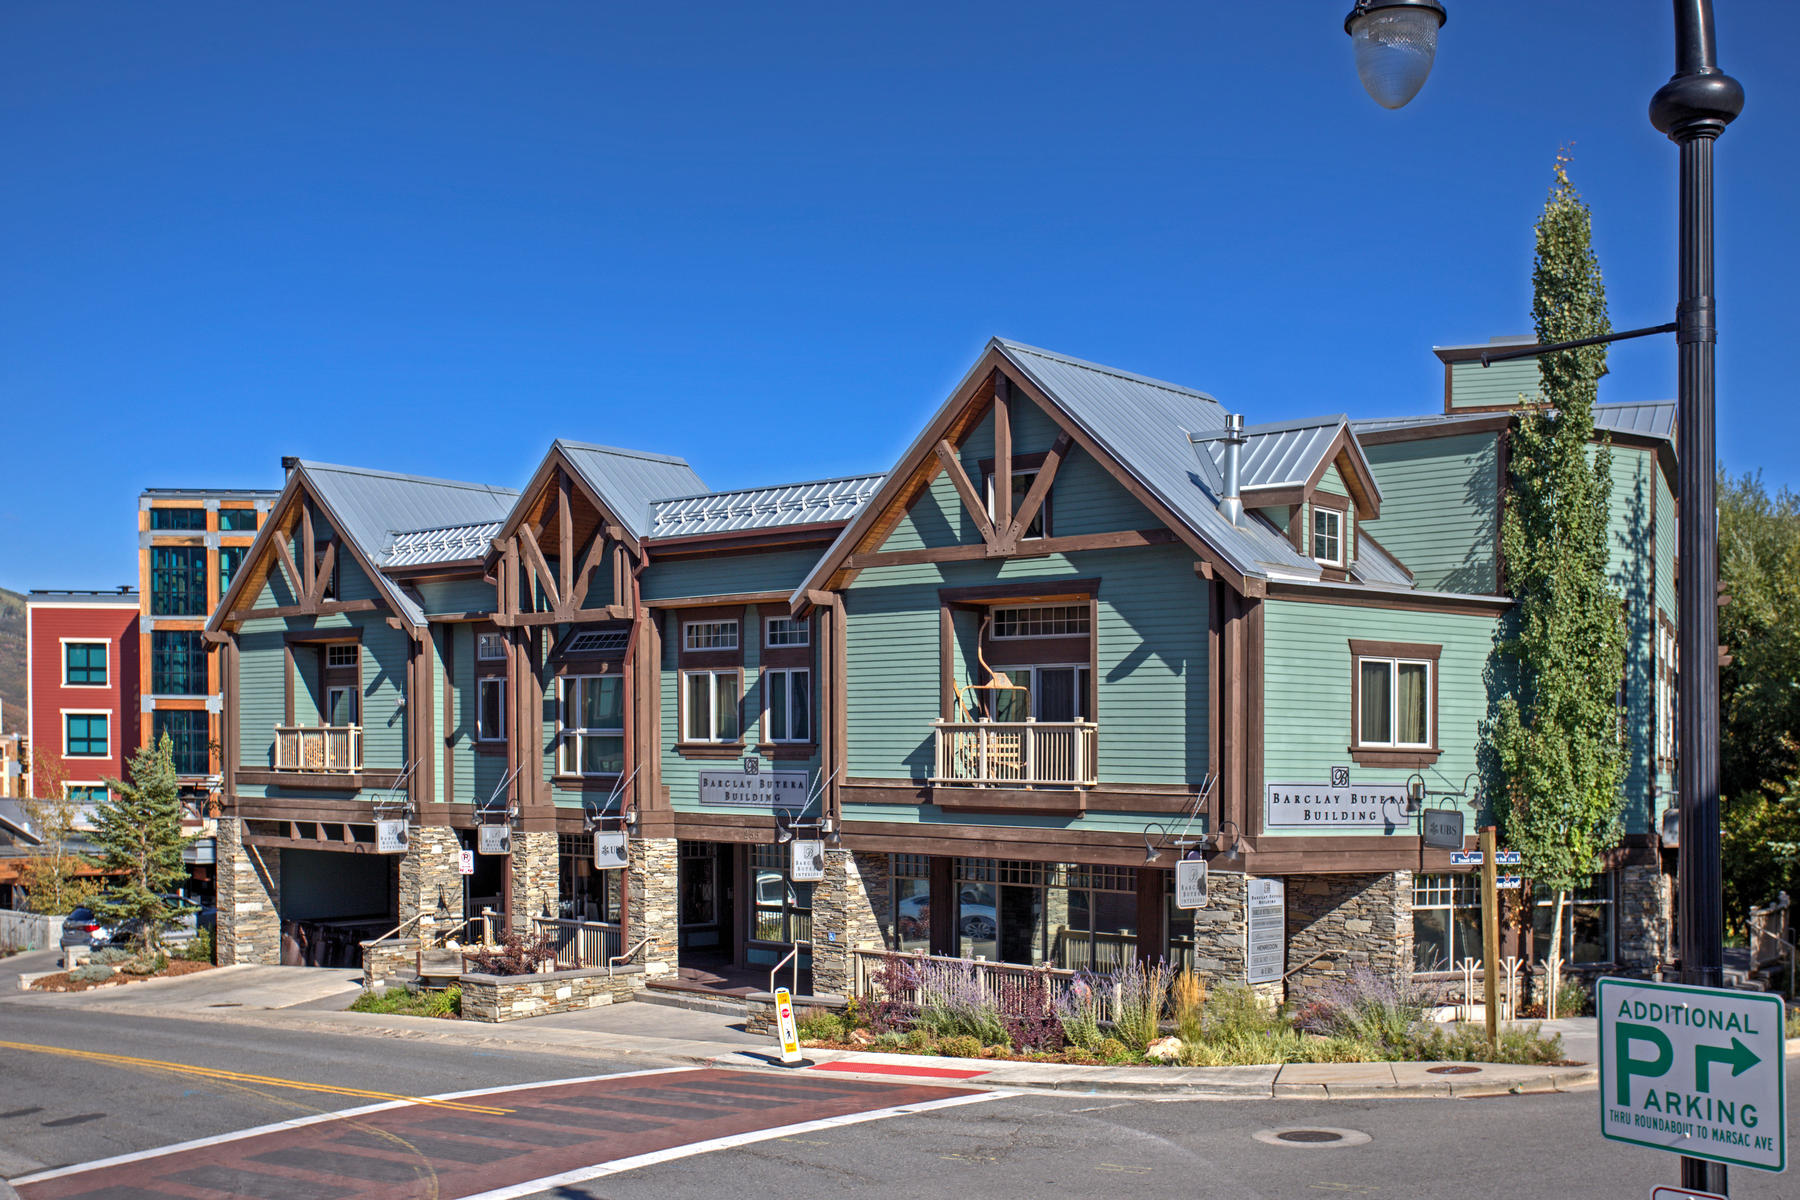 Condominium for Sale at The Perfect Old Town Location! 255 Heber Avenue #103 Park City, Utah 84060 United States